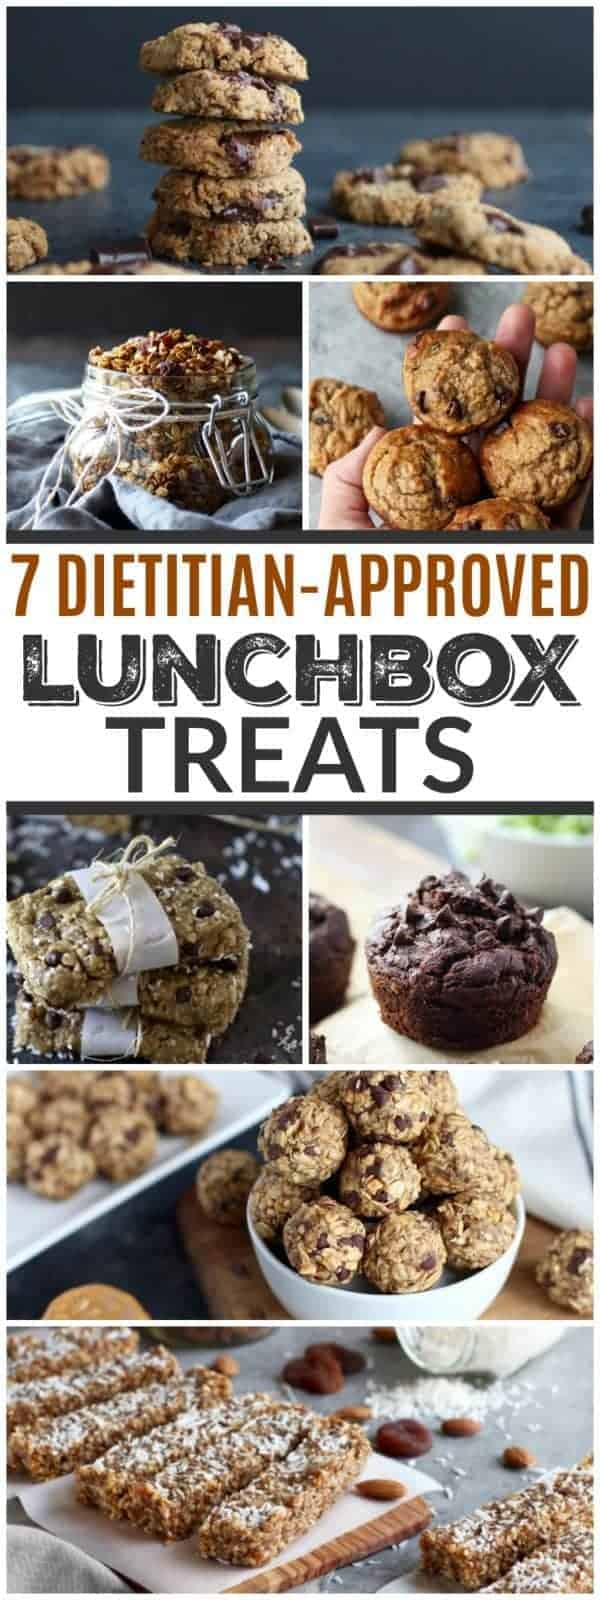 7 Dietitian-Approved Lunchbox Treats   The Real Food Dietitians   https://therealfoodrds.com/7-dietitian-approved-lunchbox-treats/